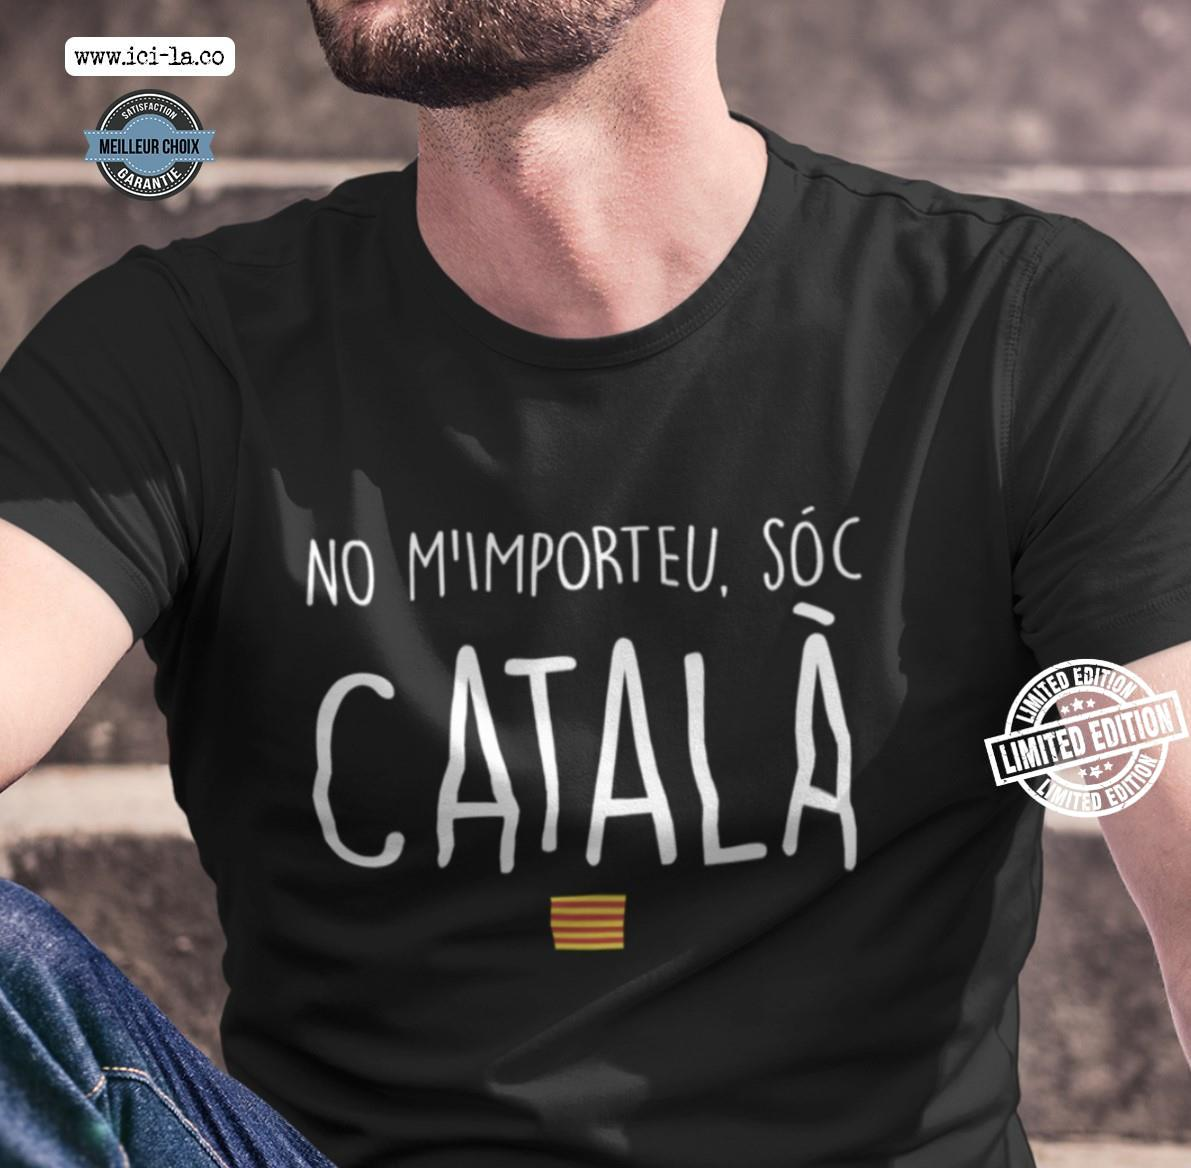 No m'importeu soc catala shirt